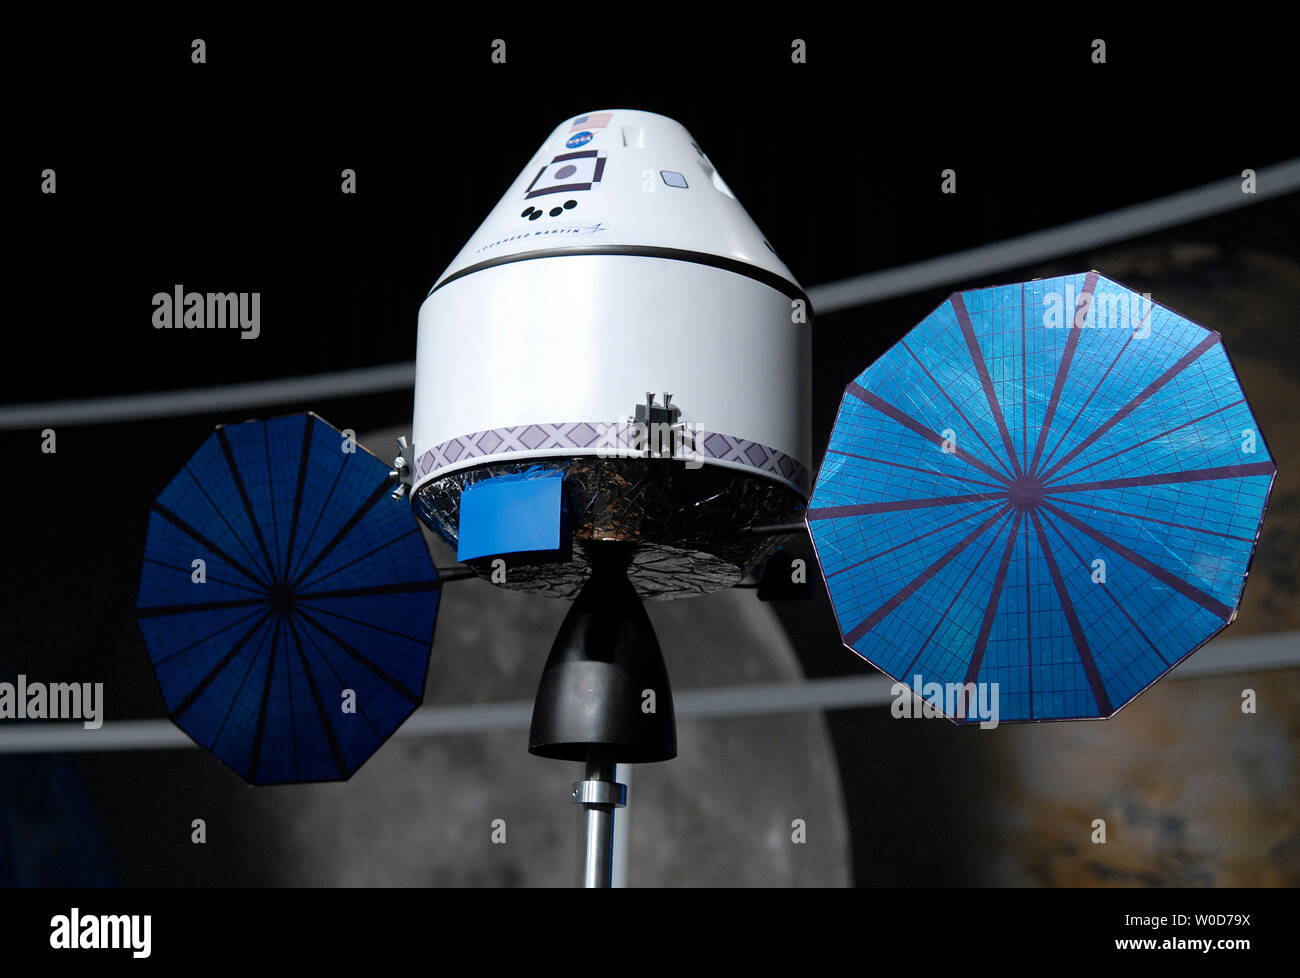 A scale model of the Orion spacecraft is seen during a press conference where NASA  announced that Lockheed Martin Corp. was selected as the prime contractor for the design, development and construction of Orion spacecraft, at NASA headquarters in Washington on August 31, 2006. The Orion will be the next generation of human spacecraft which  NASA hopes to have in orbit in 2012.  (UPI Photo/Kevin Dietsch) - Stock Image